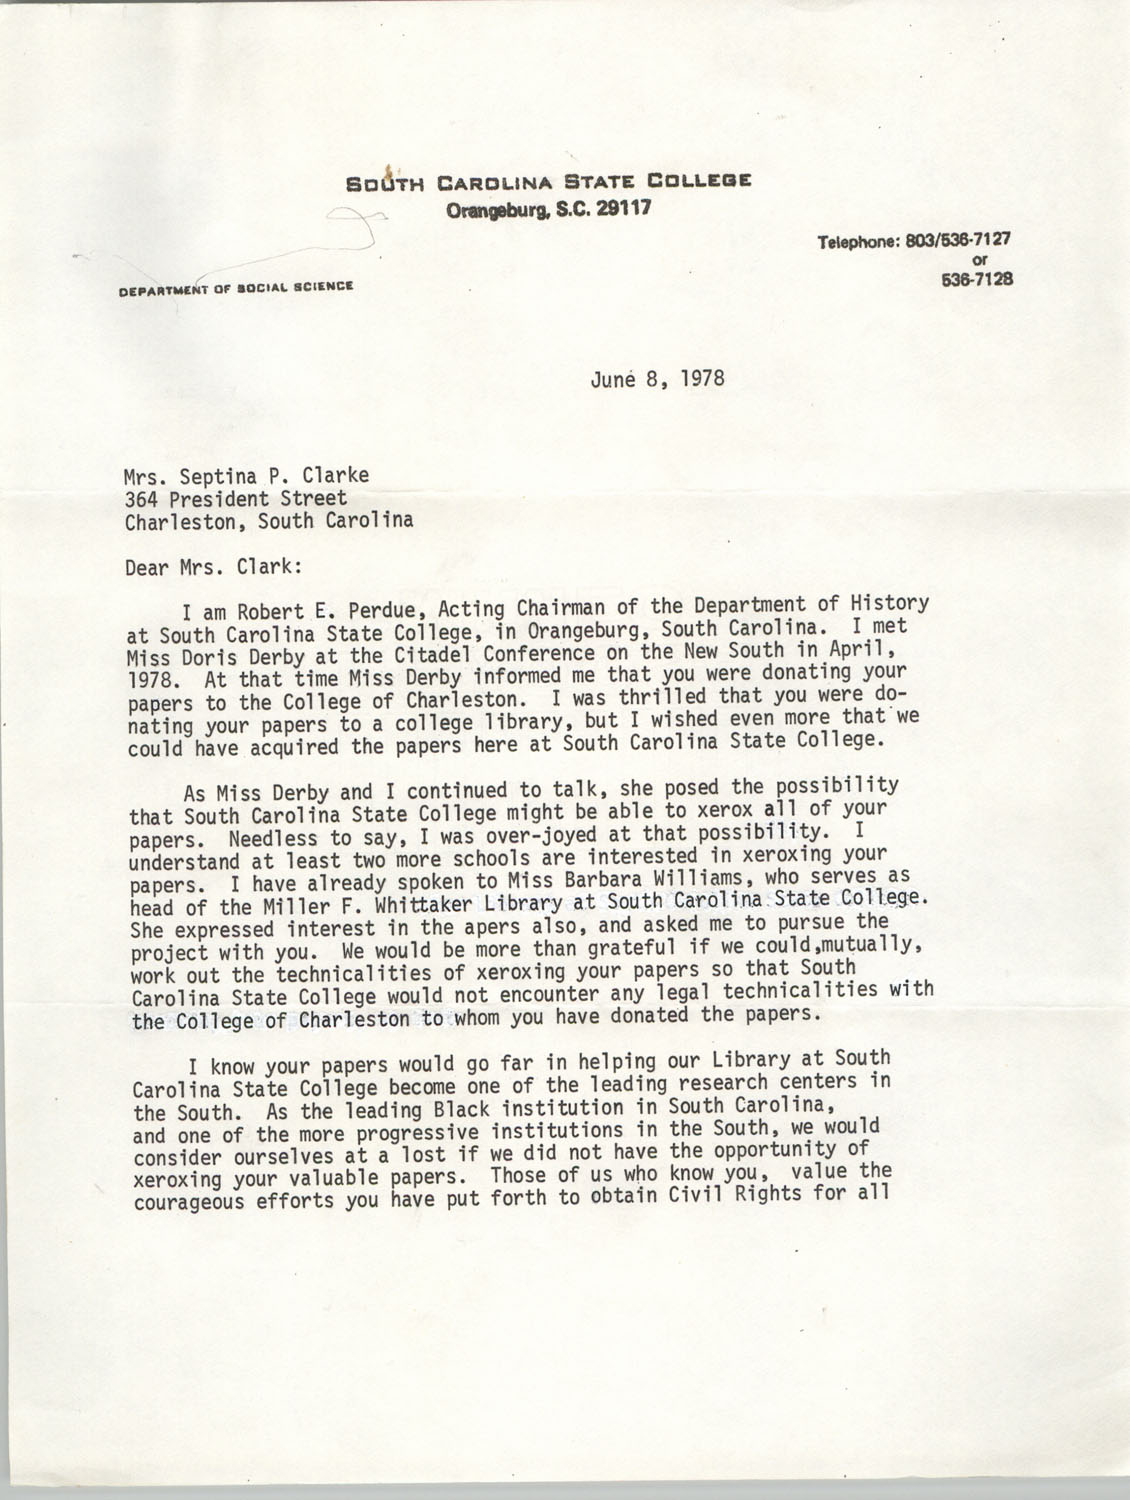 Letter from Robert E. Perdue to Septima P. Clark, June 8, 1978